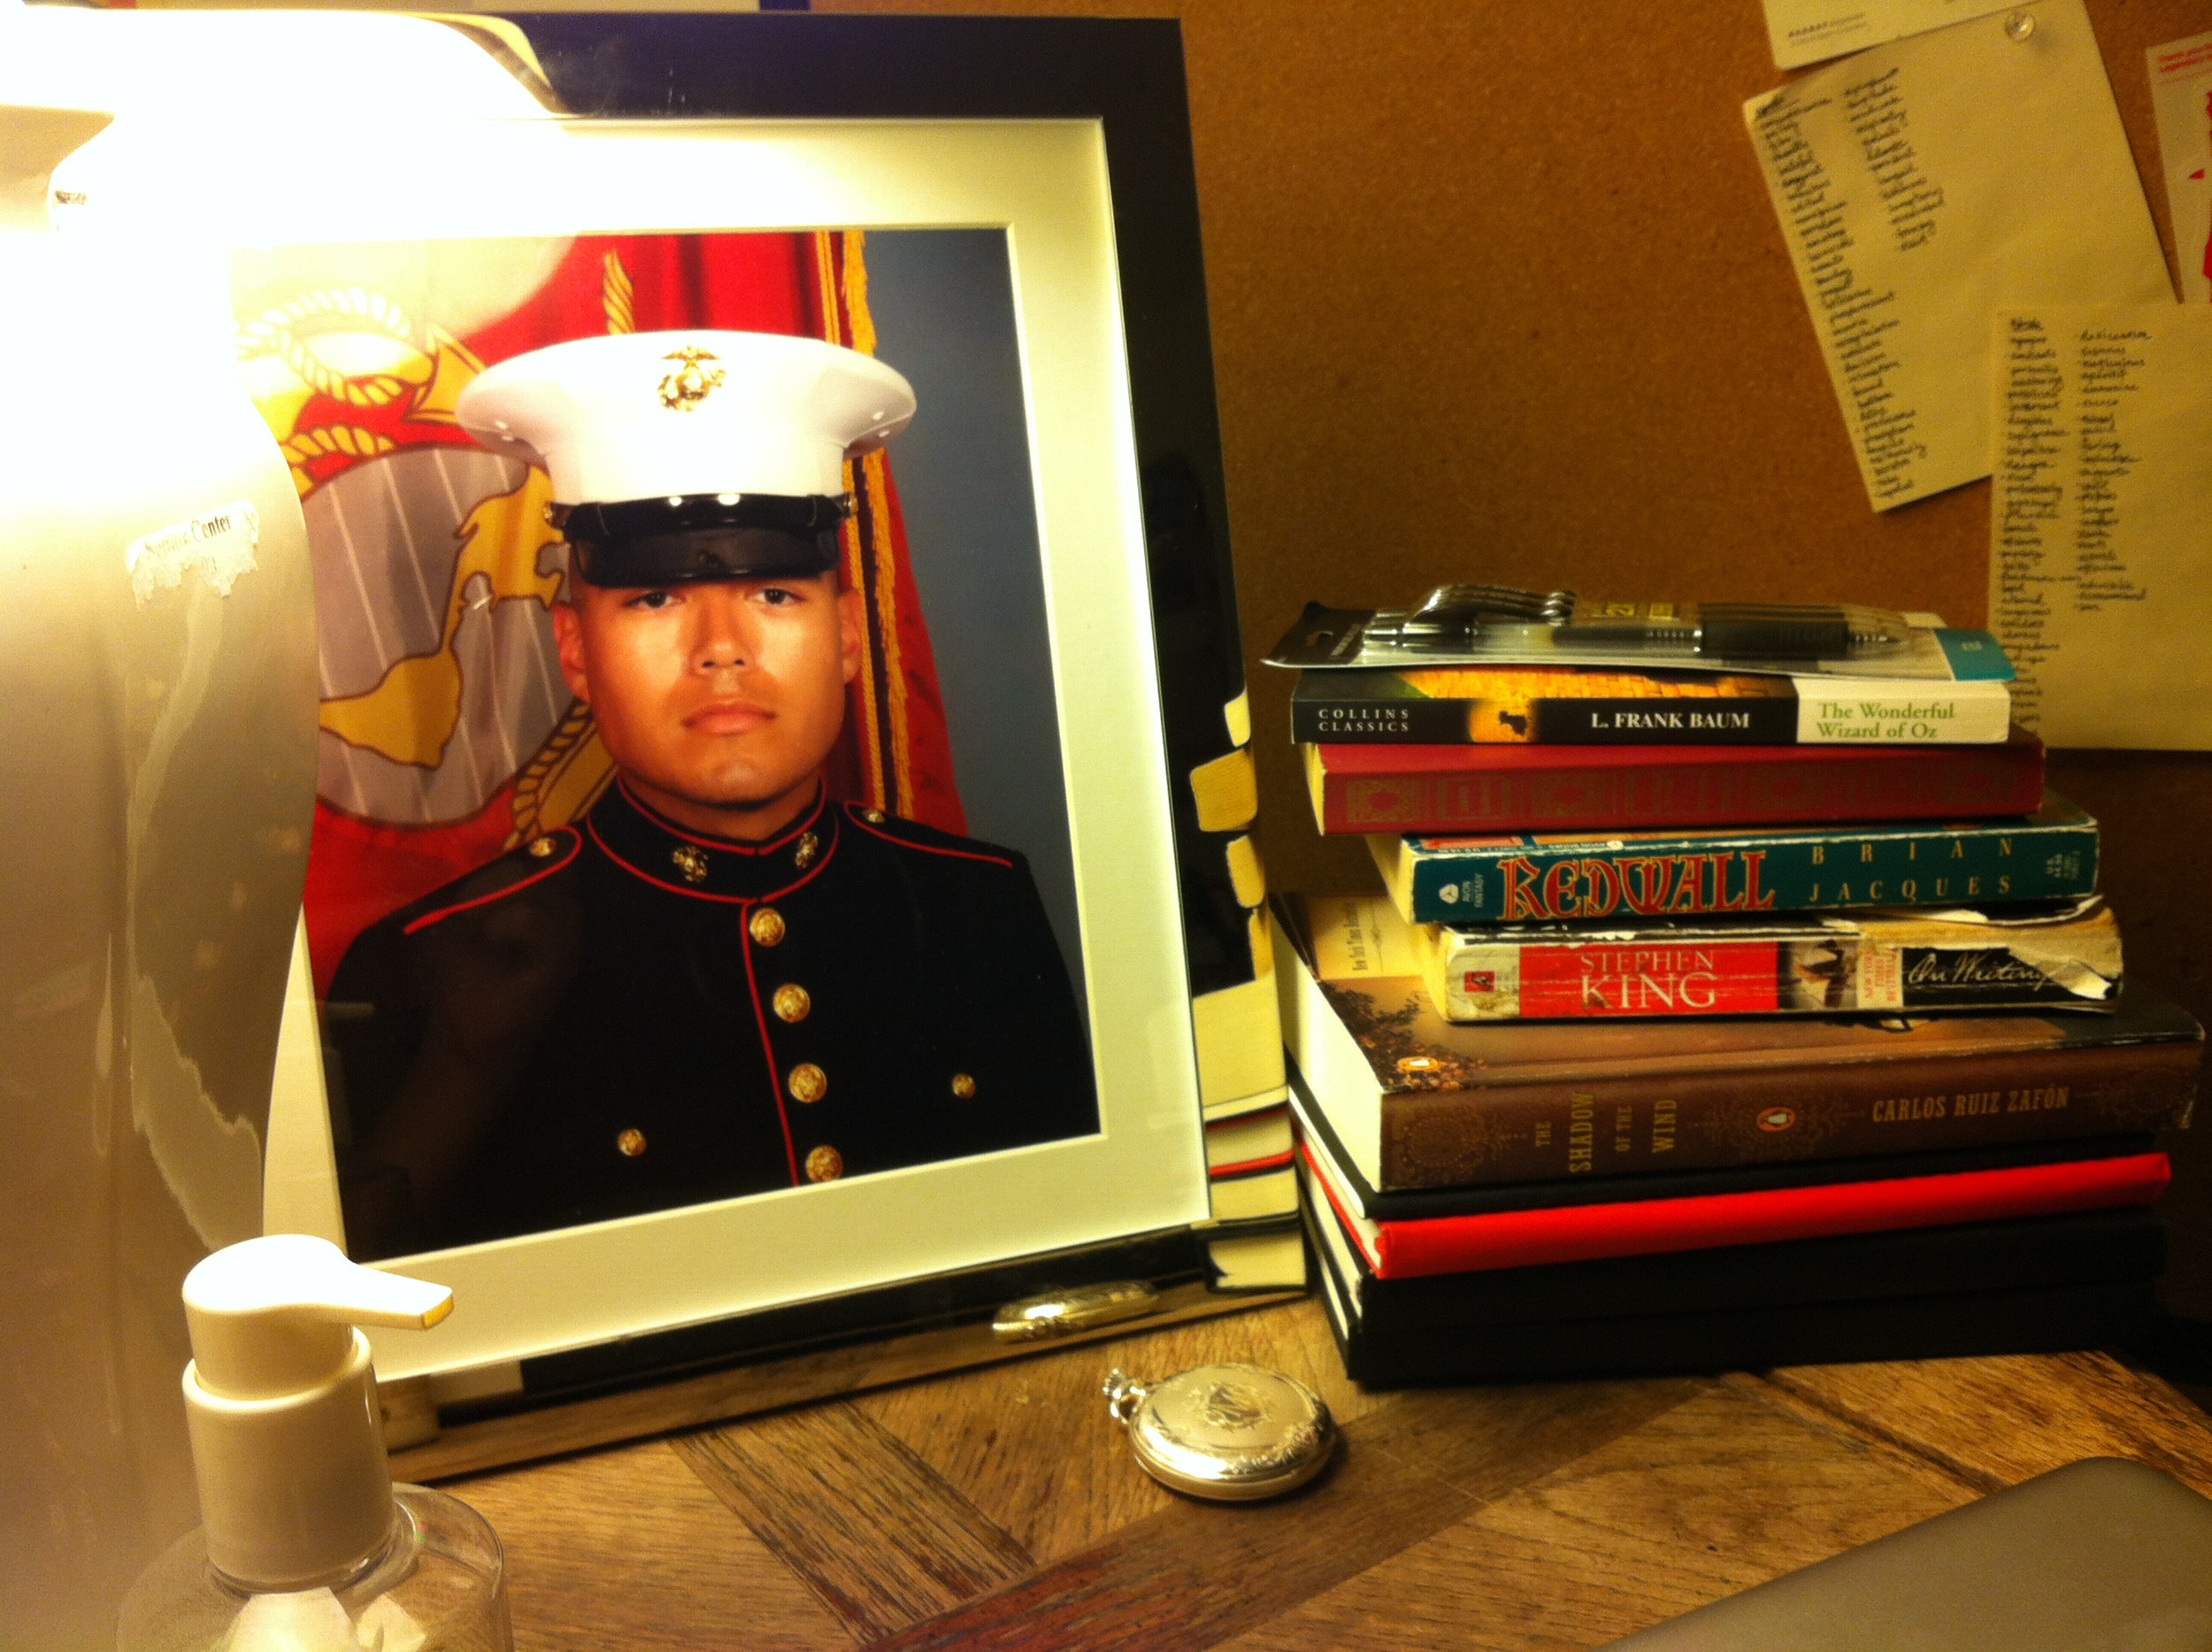 May 2013, Greencastle, Indiana. This was my bedside table before I moved down to Georgia. It was filled with things that reminded me of Ries—his watch, his portrait, and some of his favorite books.